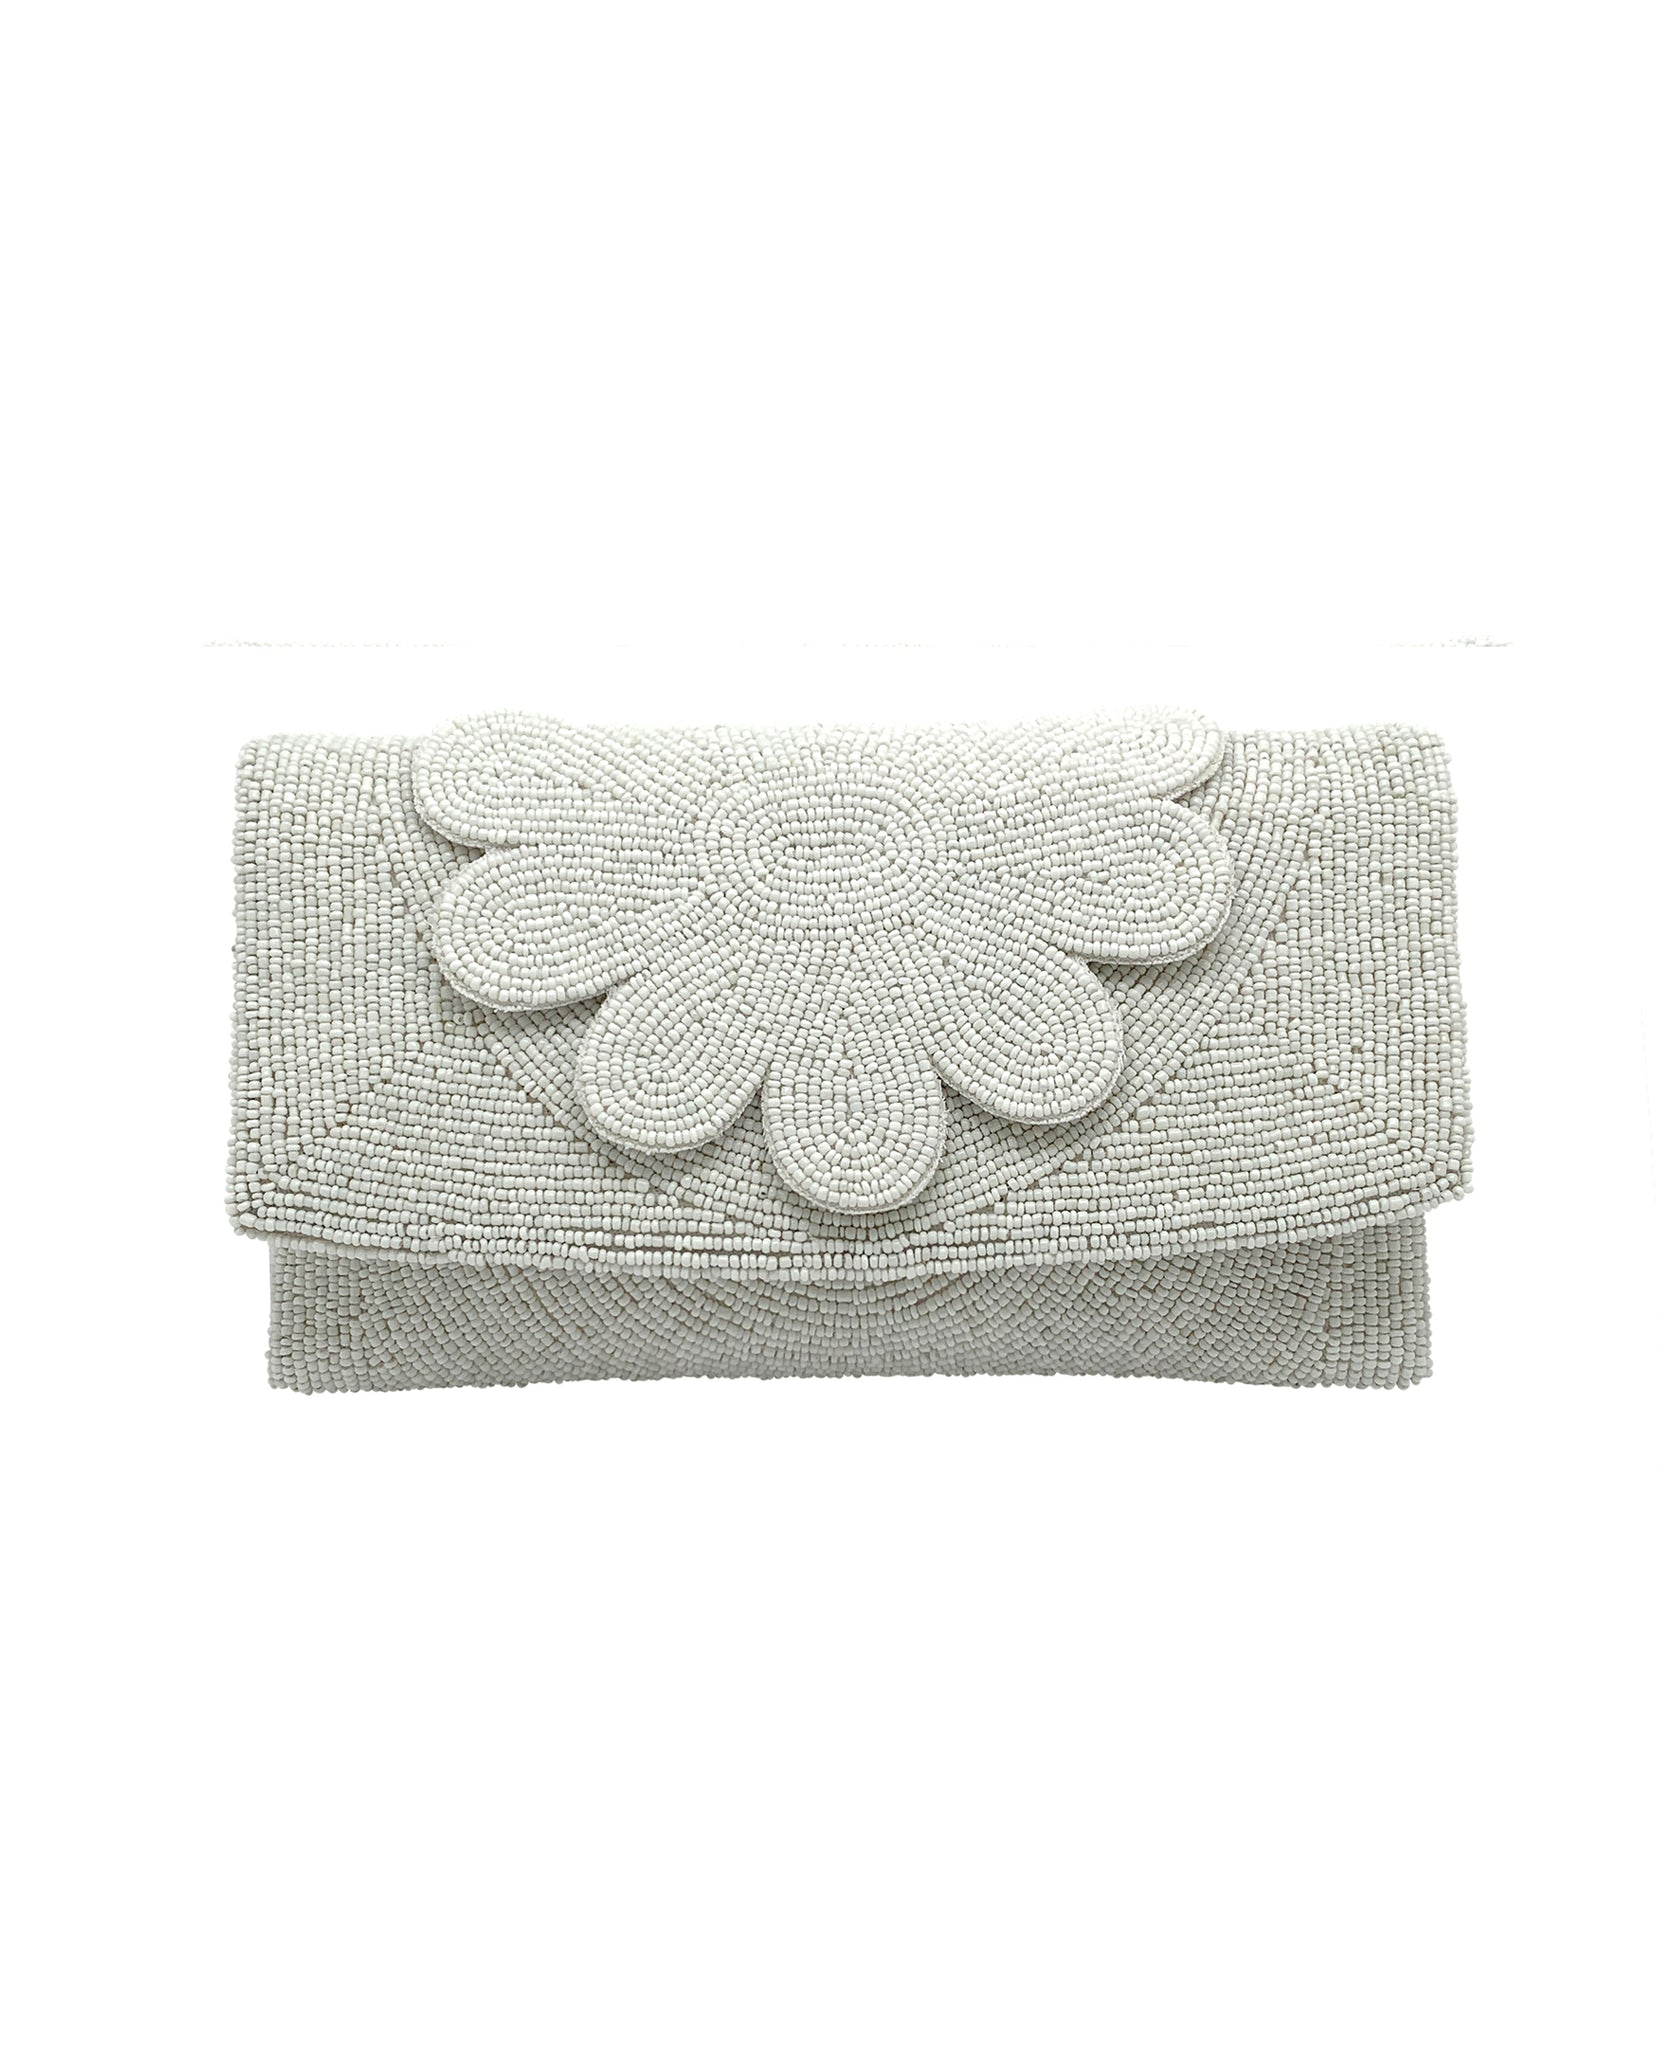 Dahlia Large Beaded Floral Flap Clutch